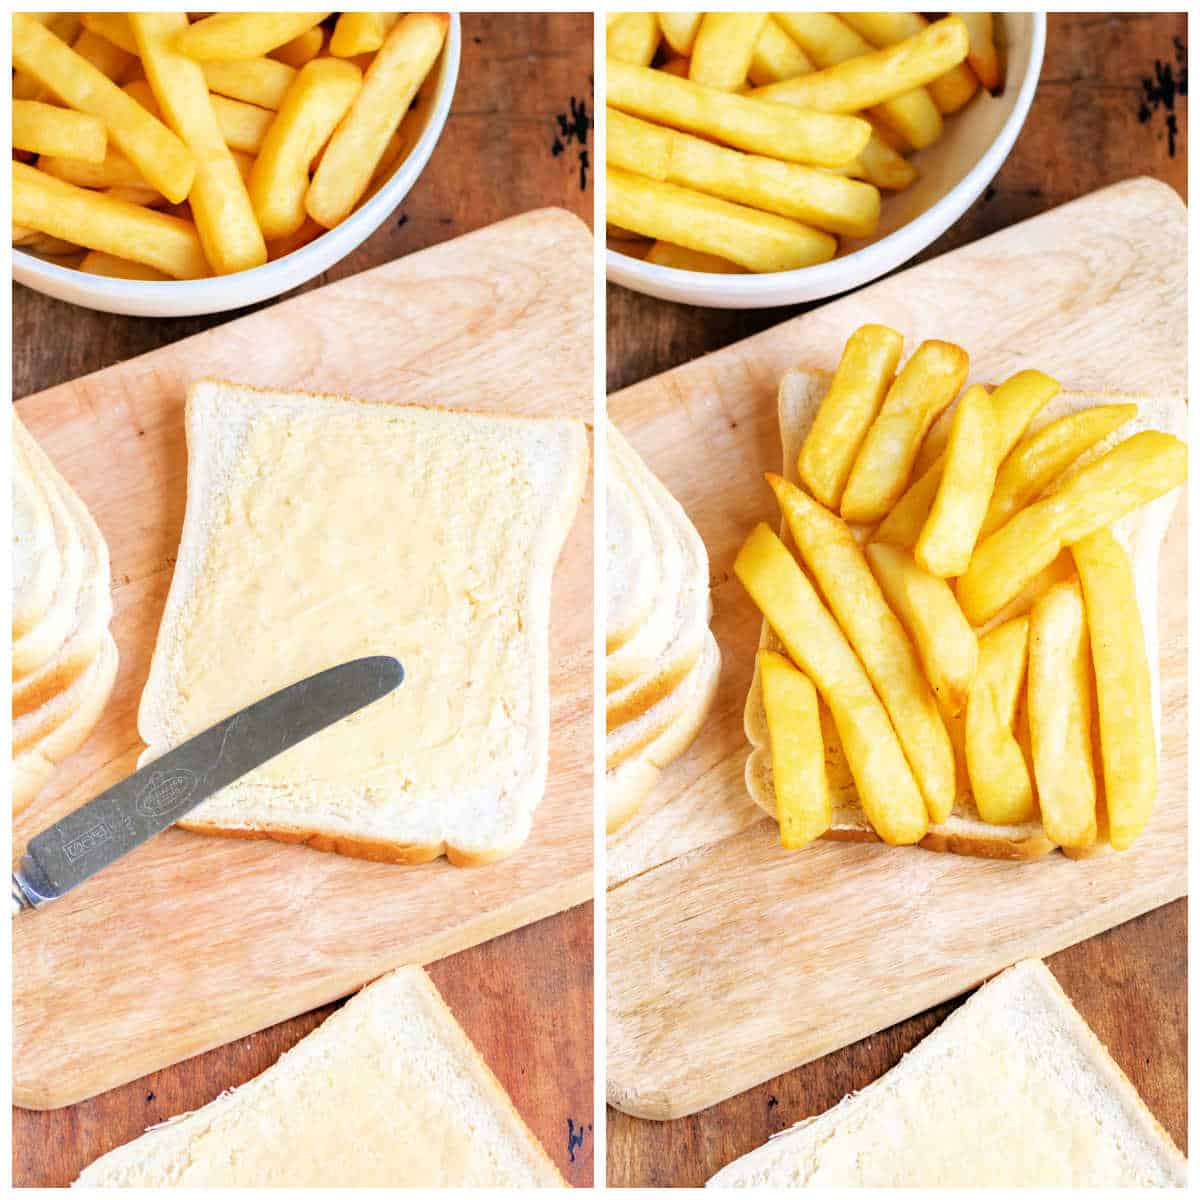 Collage making chip butties: spreading butter on bread, adding chips.